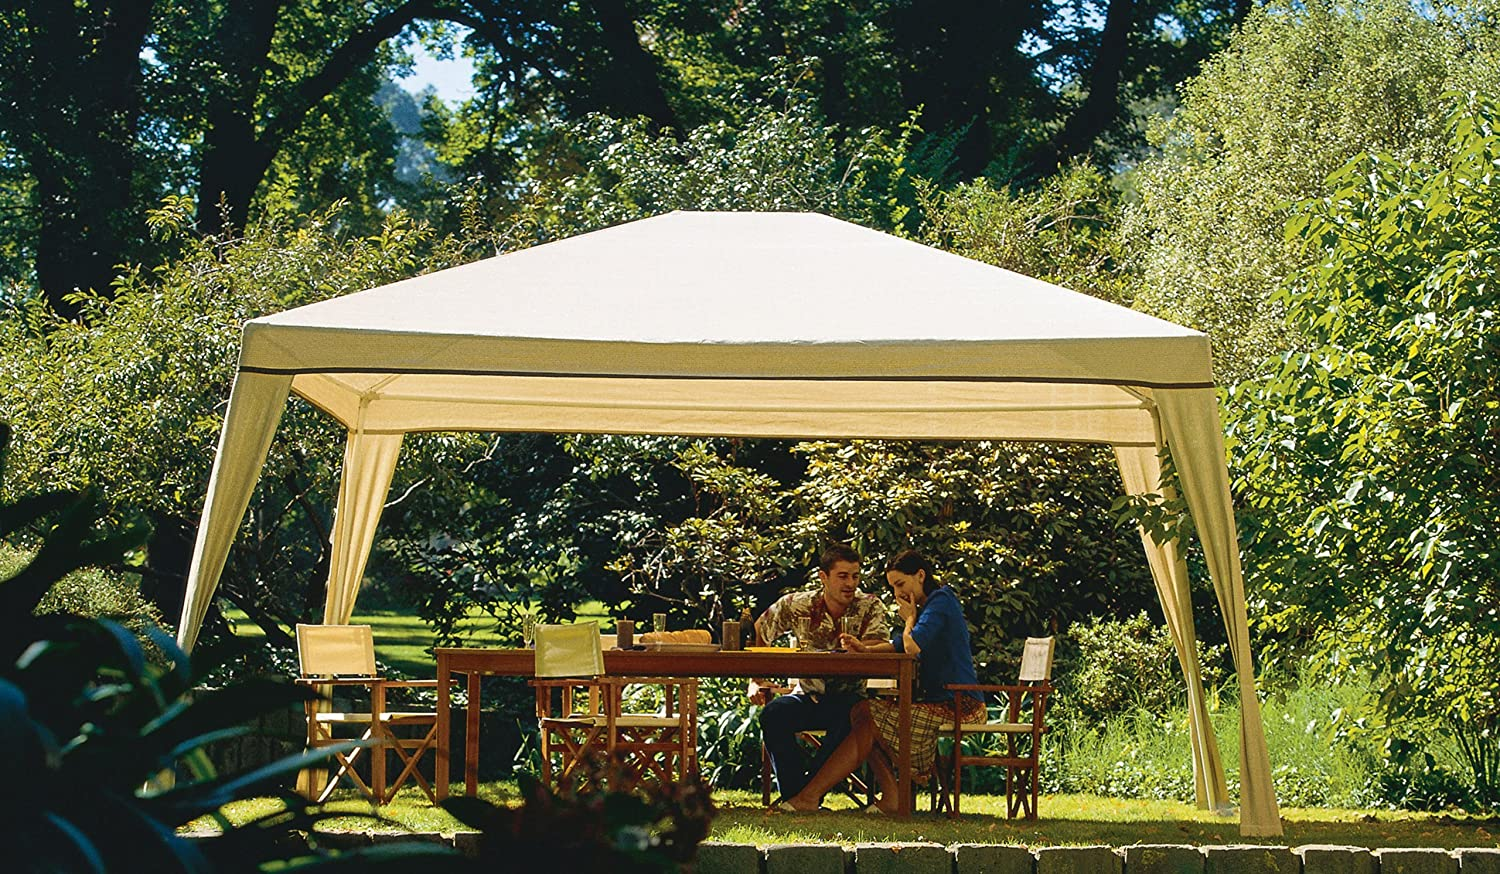 Amazon.com Coolaroo Isabella Steel Post Gazebo 10-Foot by 12-Foot Camel Garden u0026 Outdoor & Amazon.com: Coolaroo Isabella Steel Post Gazebo 10-Foot by 12-Foot ...